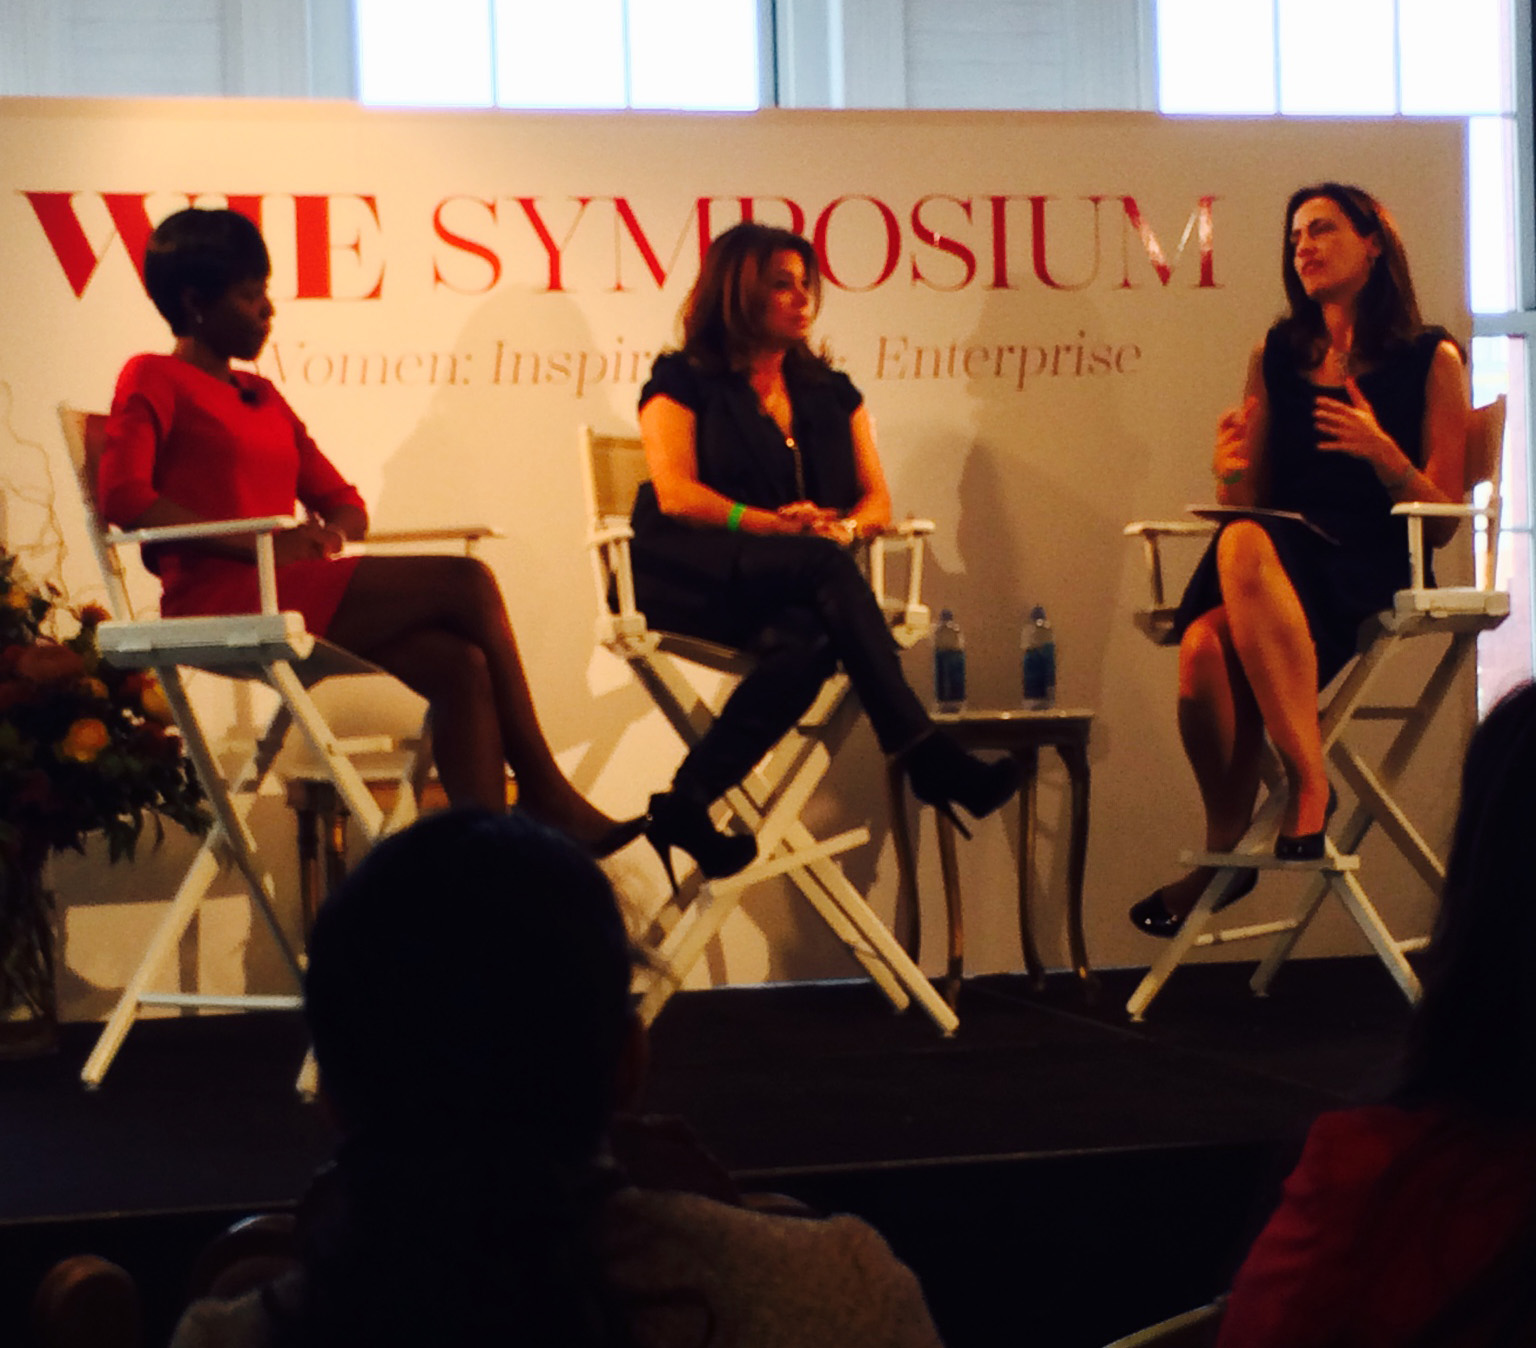 Ninon Marapachi, Head of Hedge Fund Origination and Product Management, Bank of America Merrill Lynch and Meryl Poster, Head of Television at the Weinstein Company discuss Choosing Your Boss with Susan Ochs, Senior Fellow of the Aspen Institute.